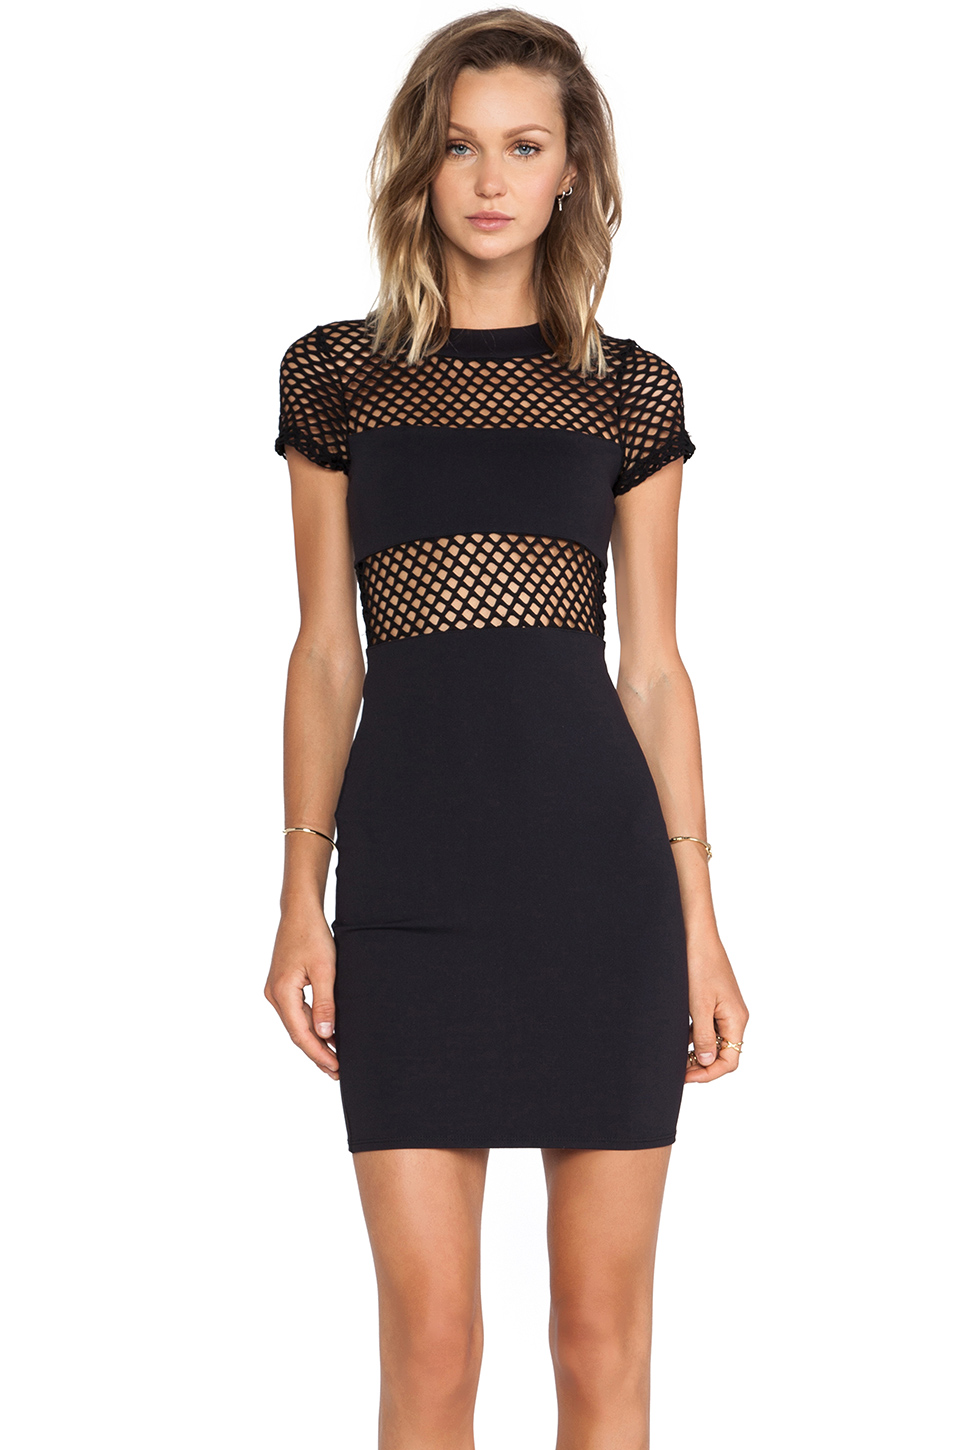 Donna mizani banded fitted mini dress in caviar from revolveclothing.com